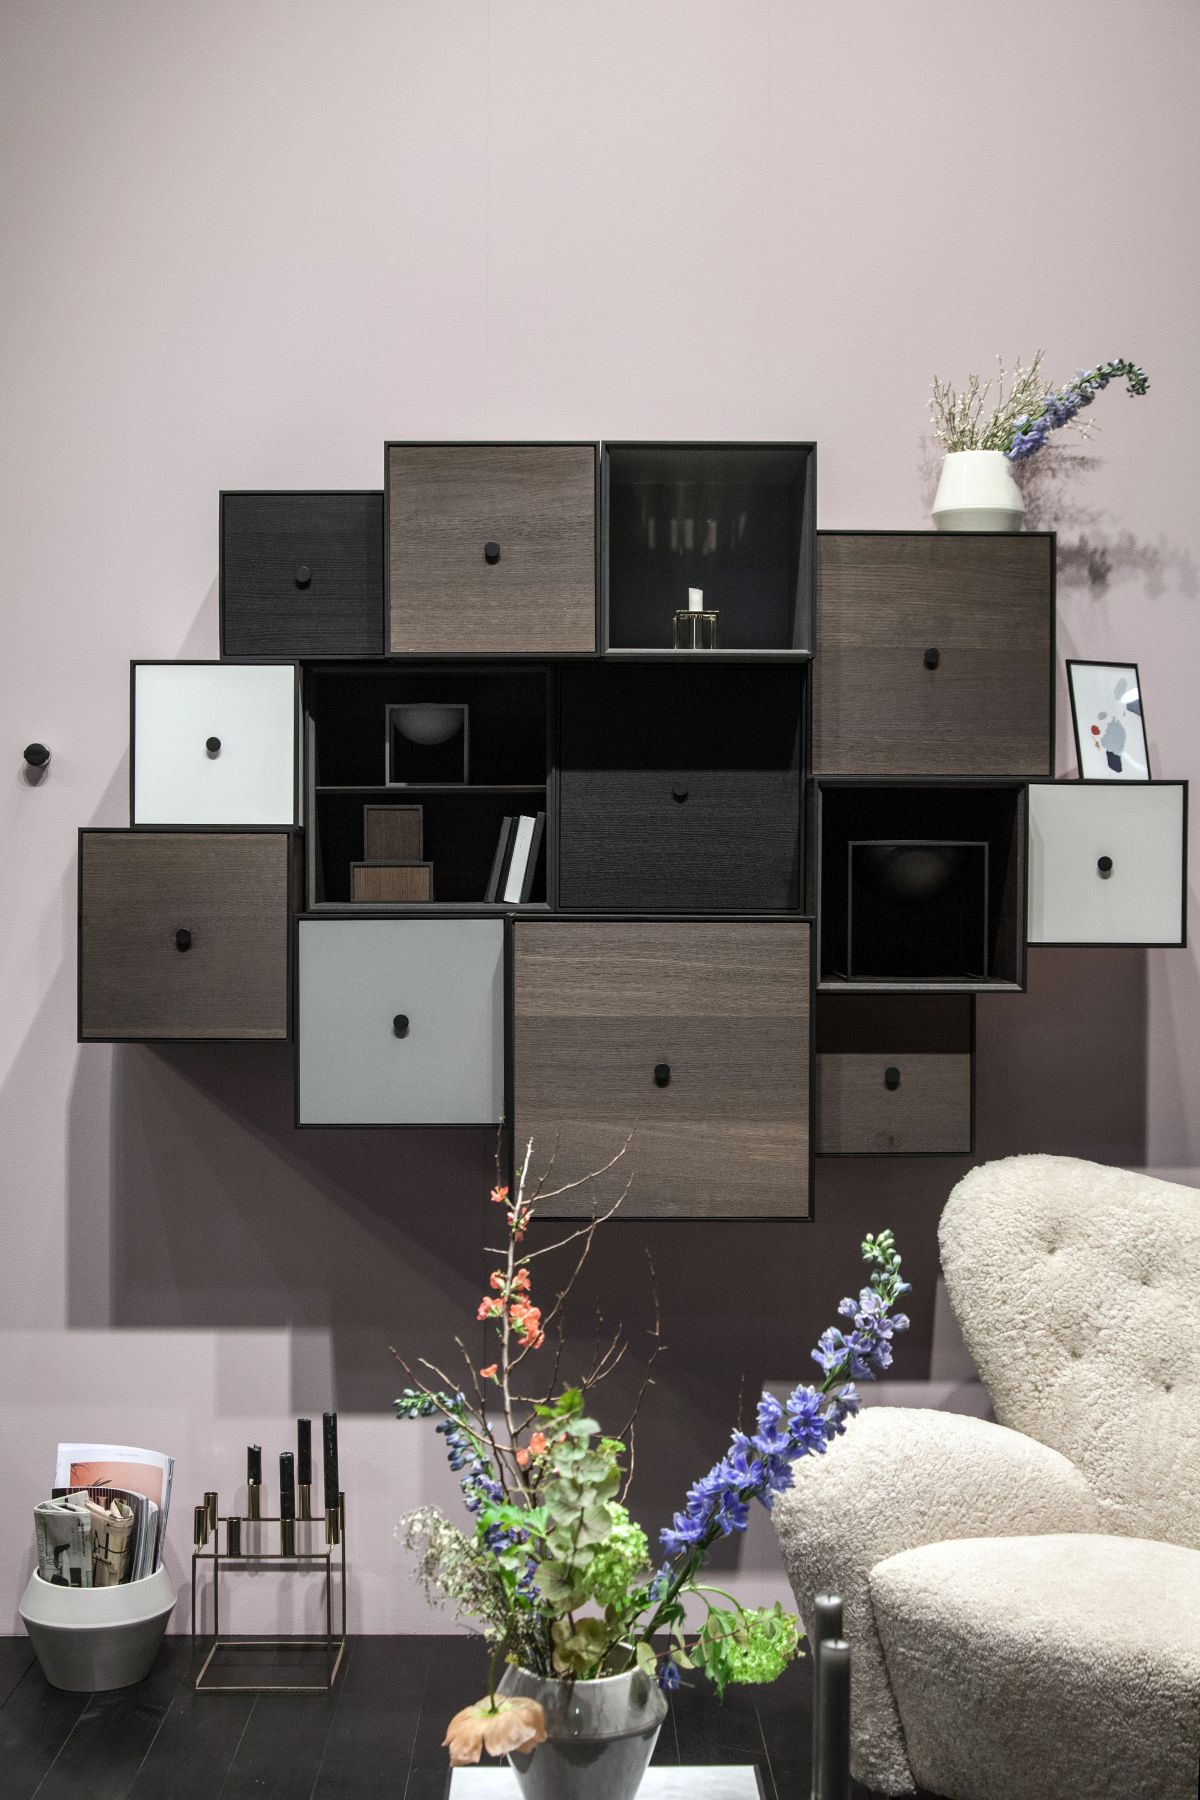 An arrangement of storage cubbies with the occasional open shelf can be really fun to design